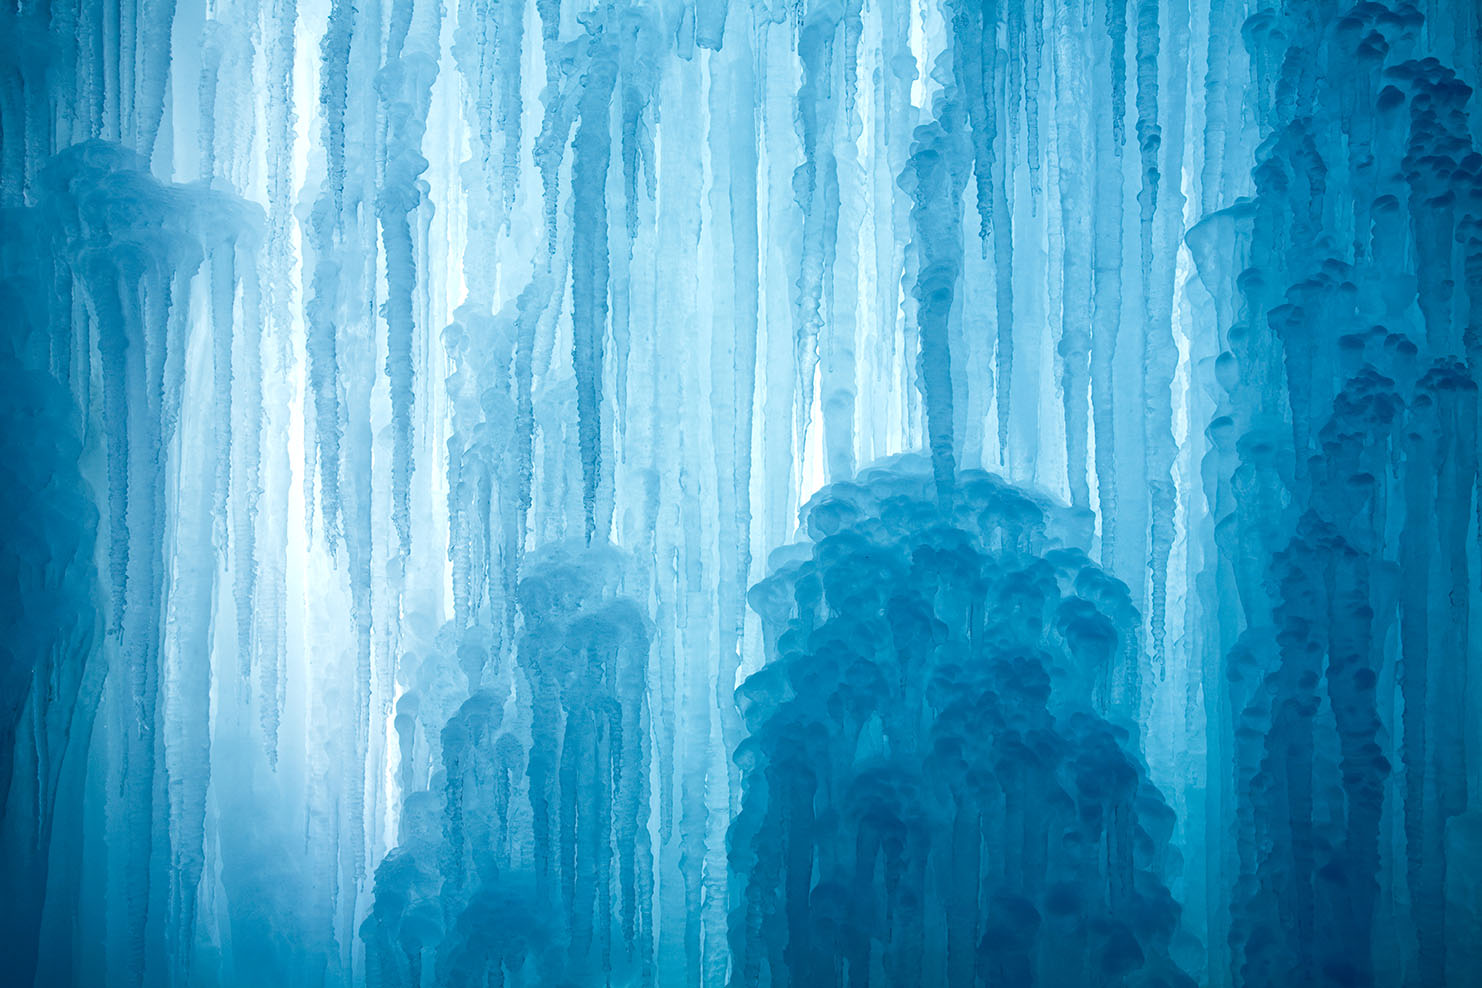 A frozen waterfall with ice